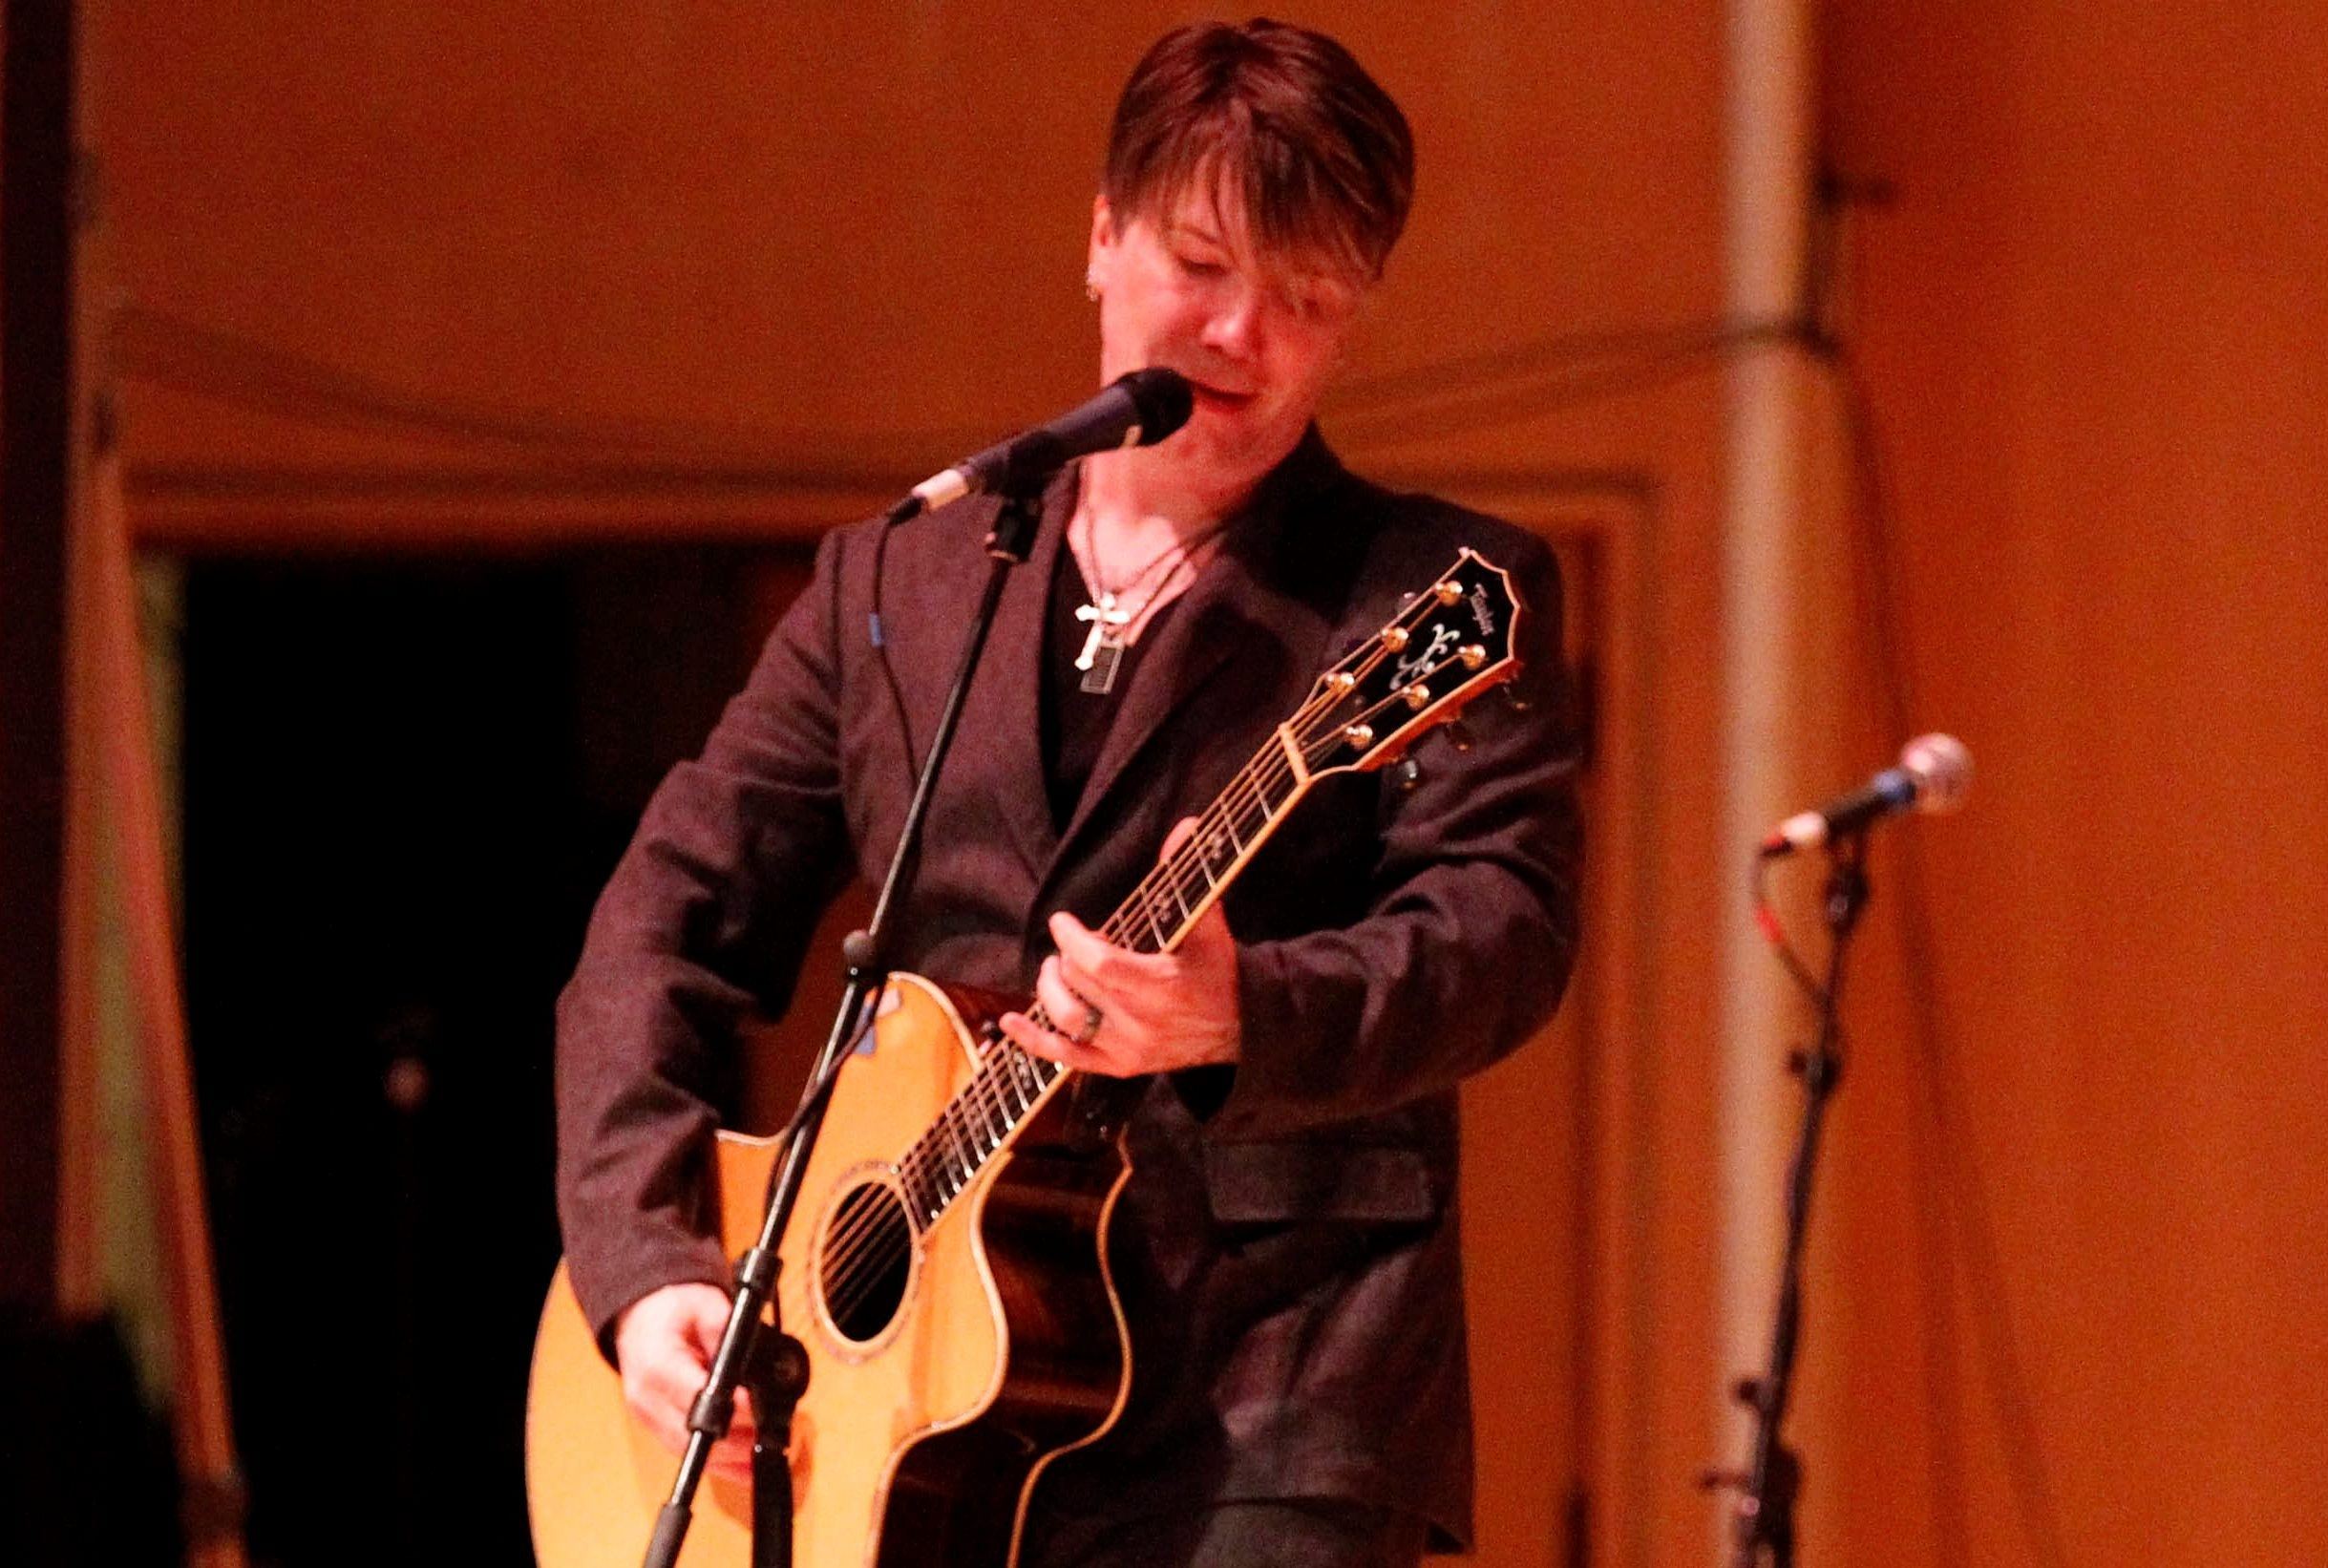 John Rzeznik of the Goo Goo Dolls will perform two shows with Daryl Hall of Hall & Oates in March. (Buffalo News file photo)